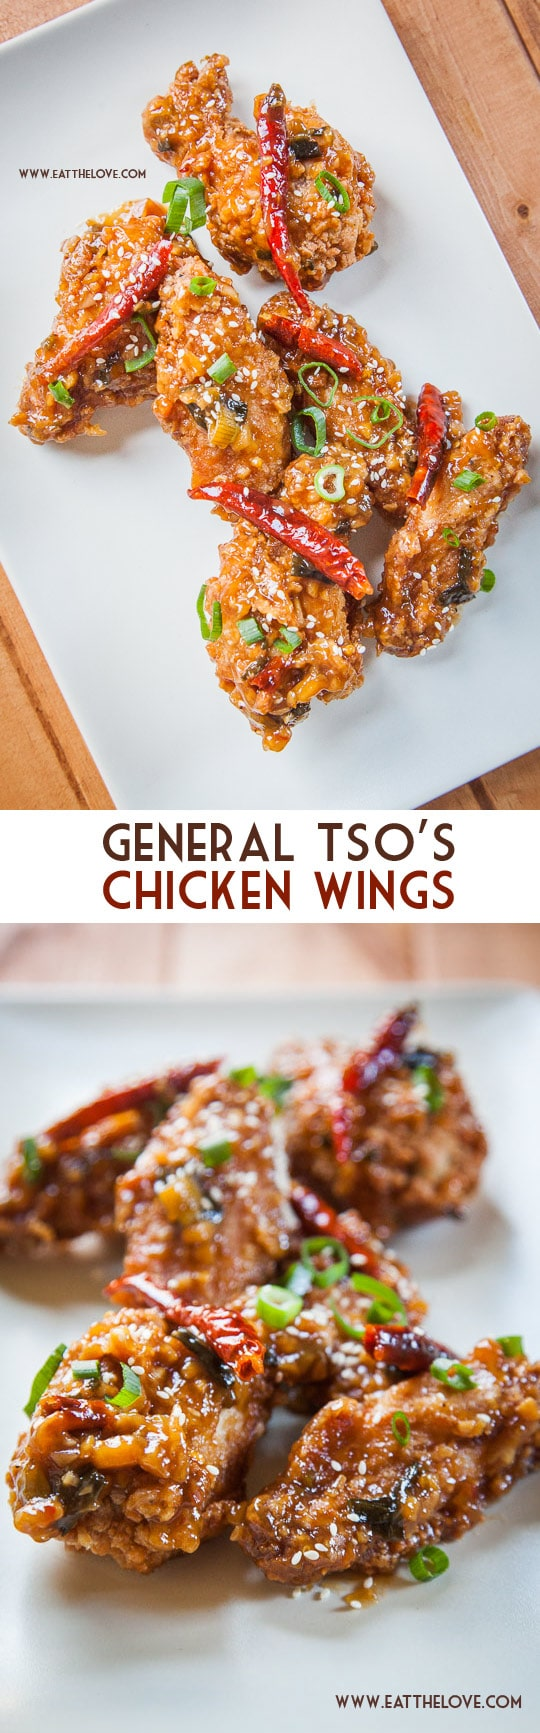 General Tso's Chicken Wings. A highly addictive appetizer recipe! Photo and recipe by Irvin Lin of Eat the Love.